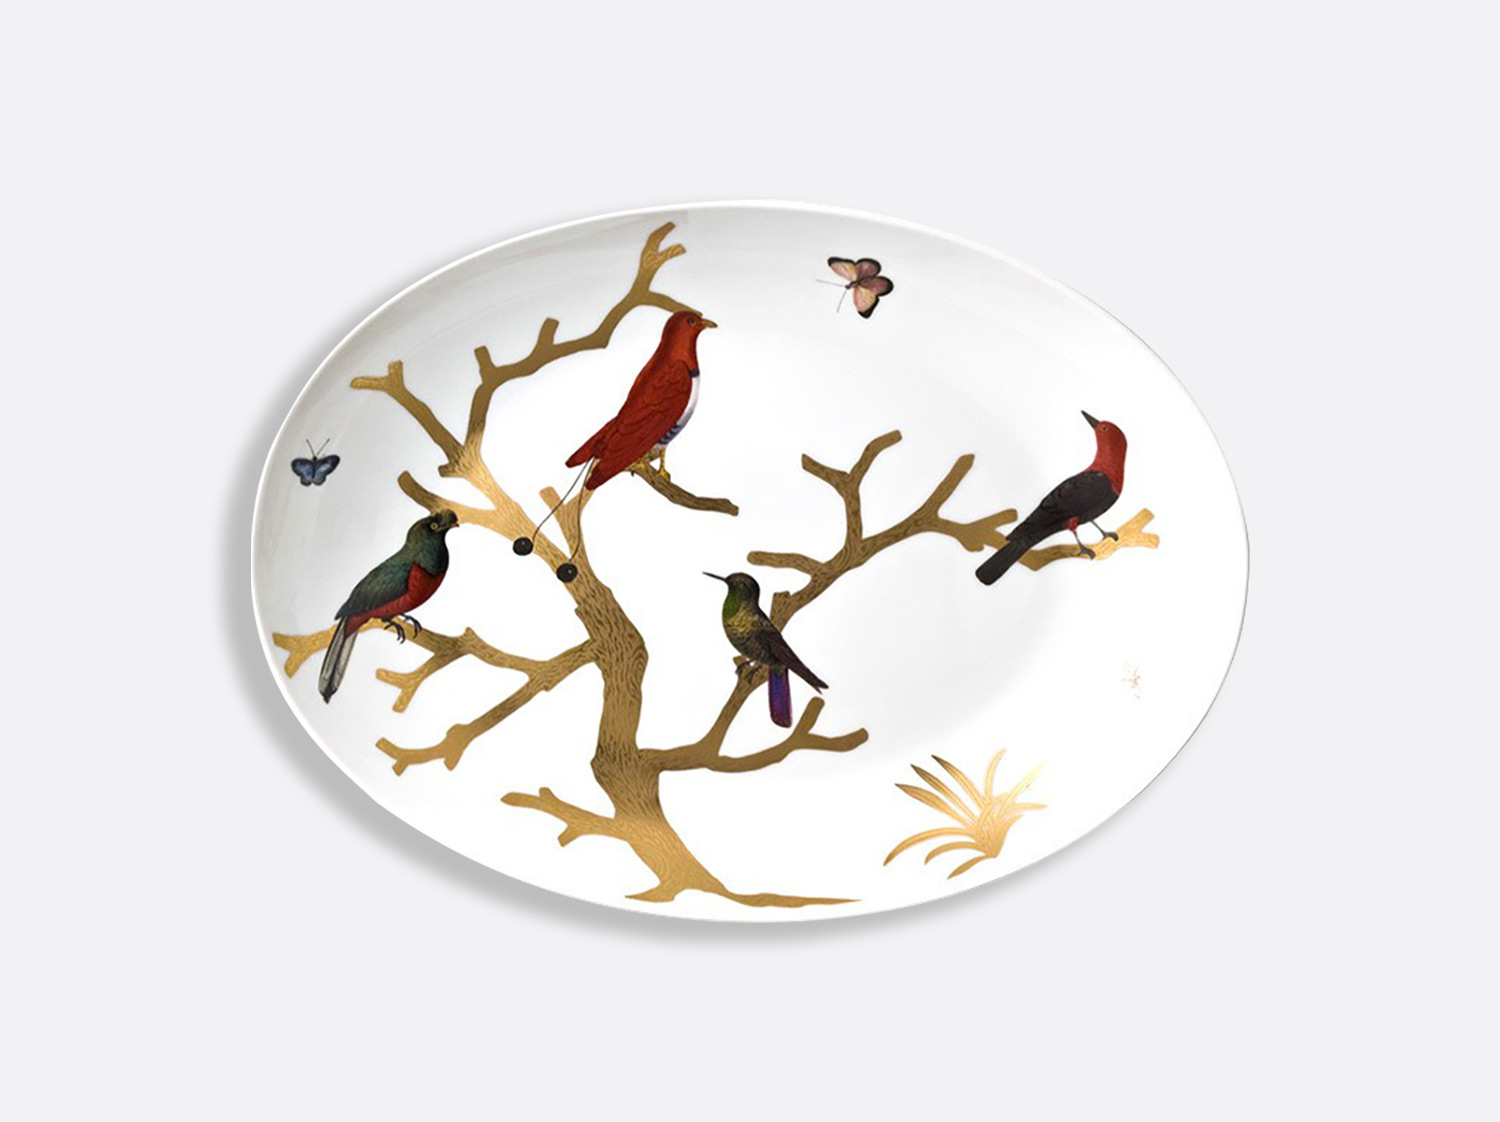 Plat ovale 39 x 28 cm en porcelaine de la collection Aux oiseaux Bernardaud